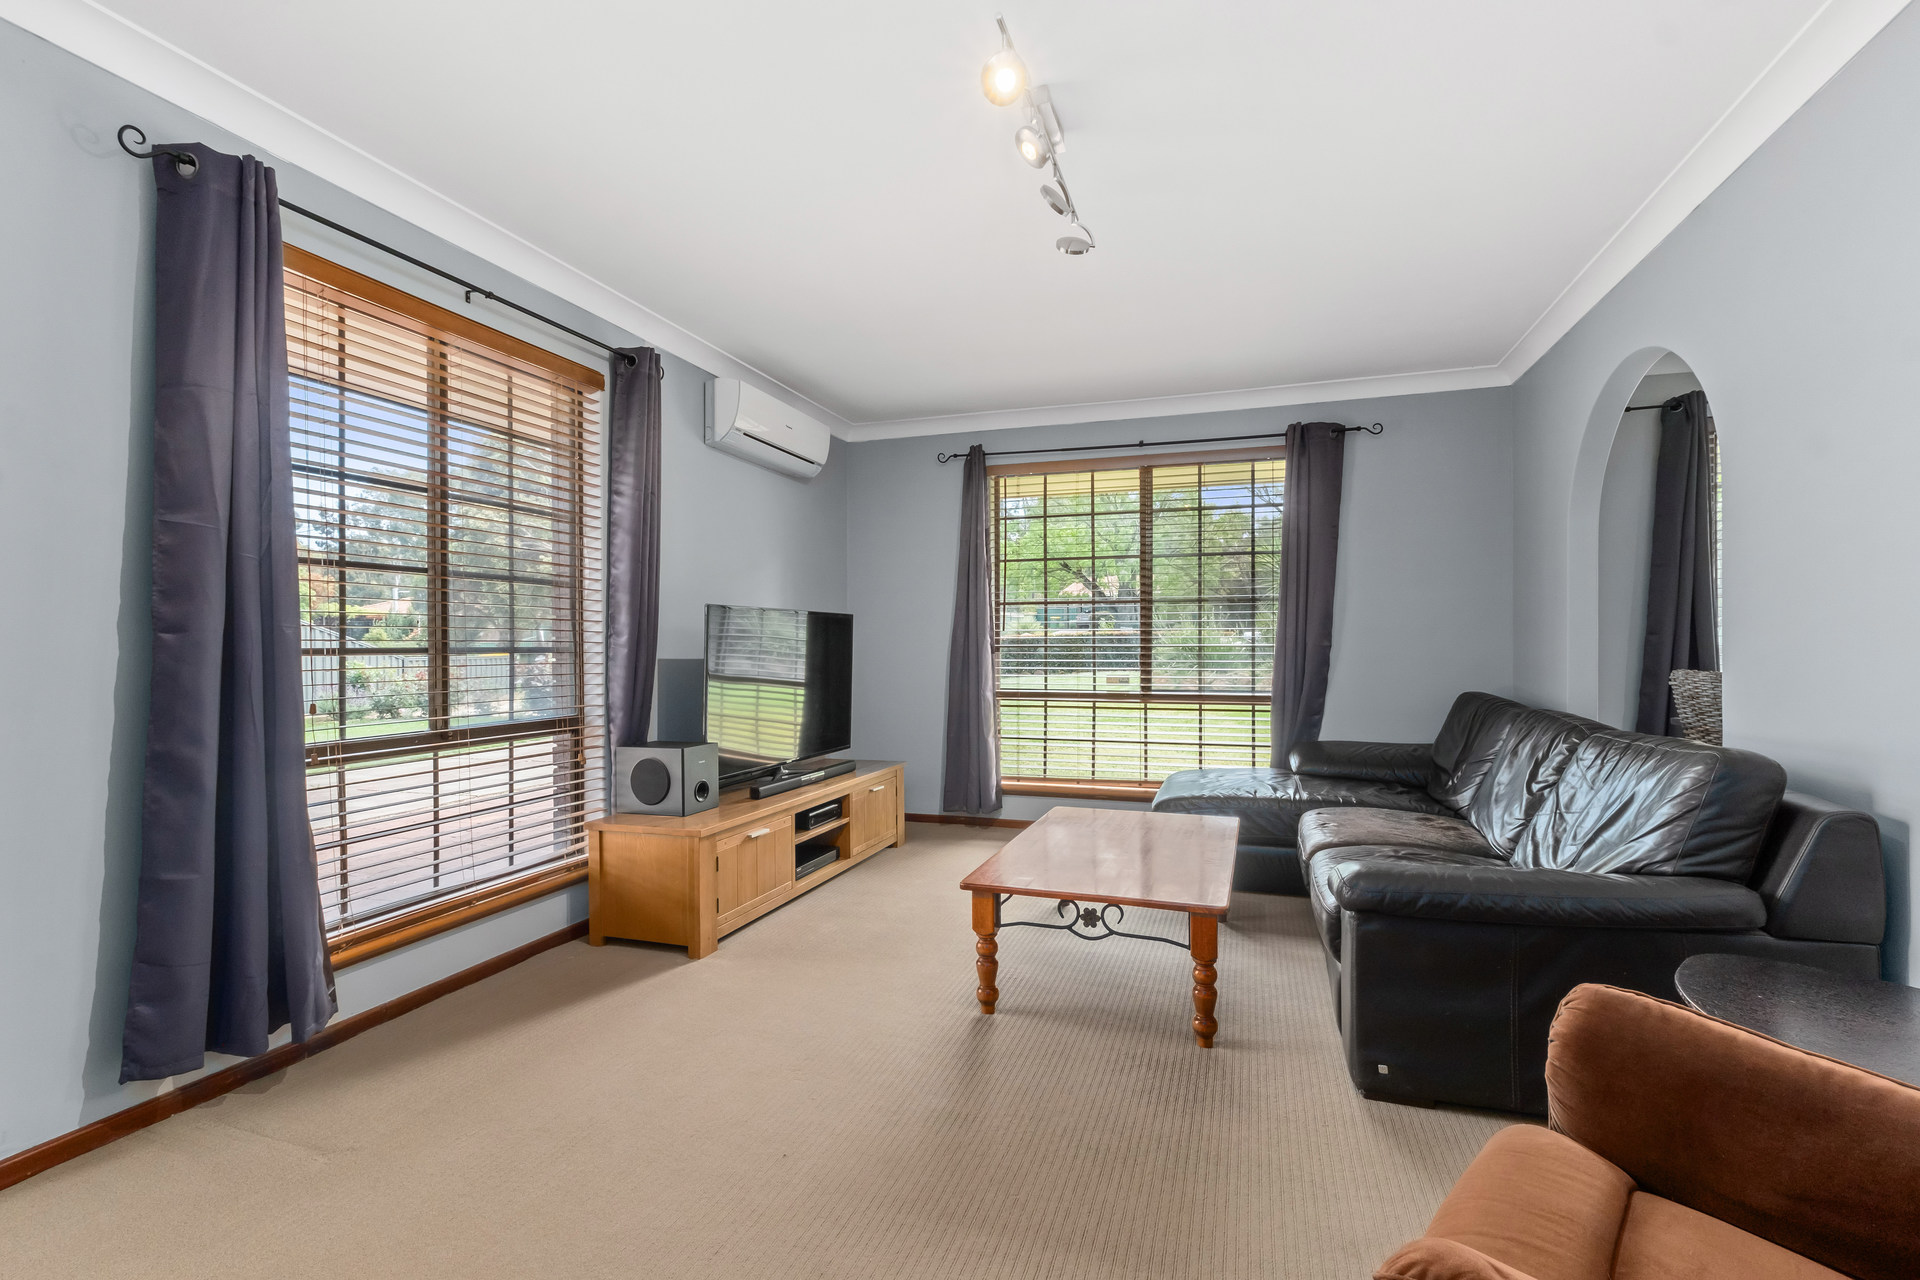 Property for sale in LESMURDIE